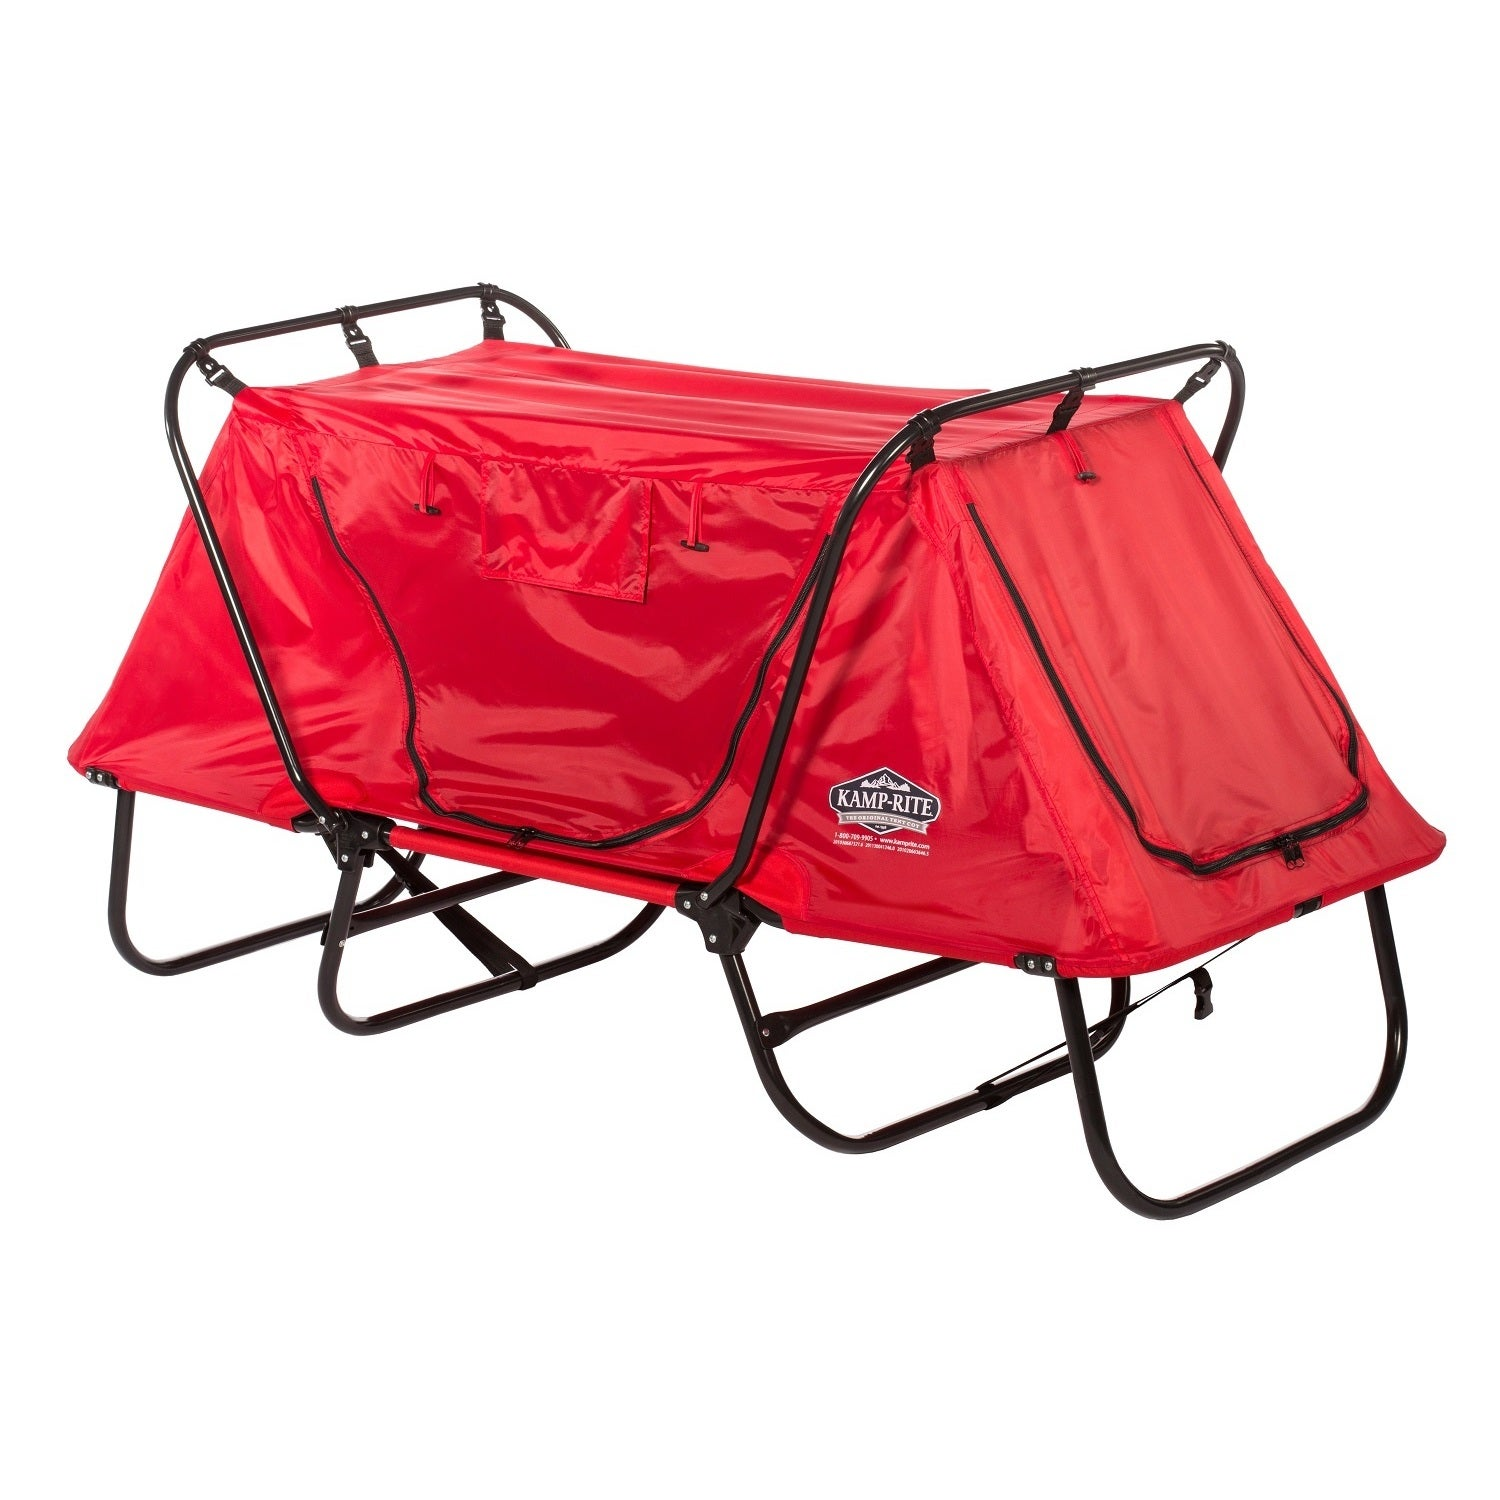 K&-Rite Red Kidu0027s Tent Cot With Rain Fly - Free Shipping Today - Overstock.com - 19427774  sc 1 st  Overstock & Kamp-Rite Red Kidu0027s Tent Cot With Rain Fly - Free Shipping Today ...